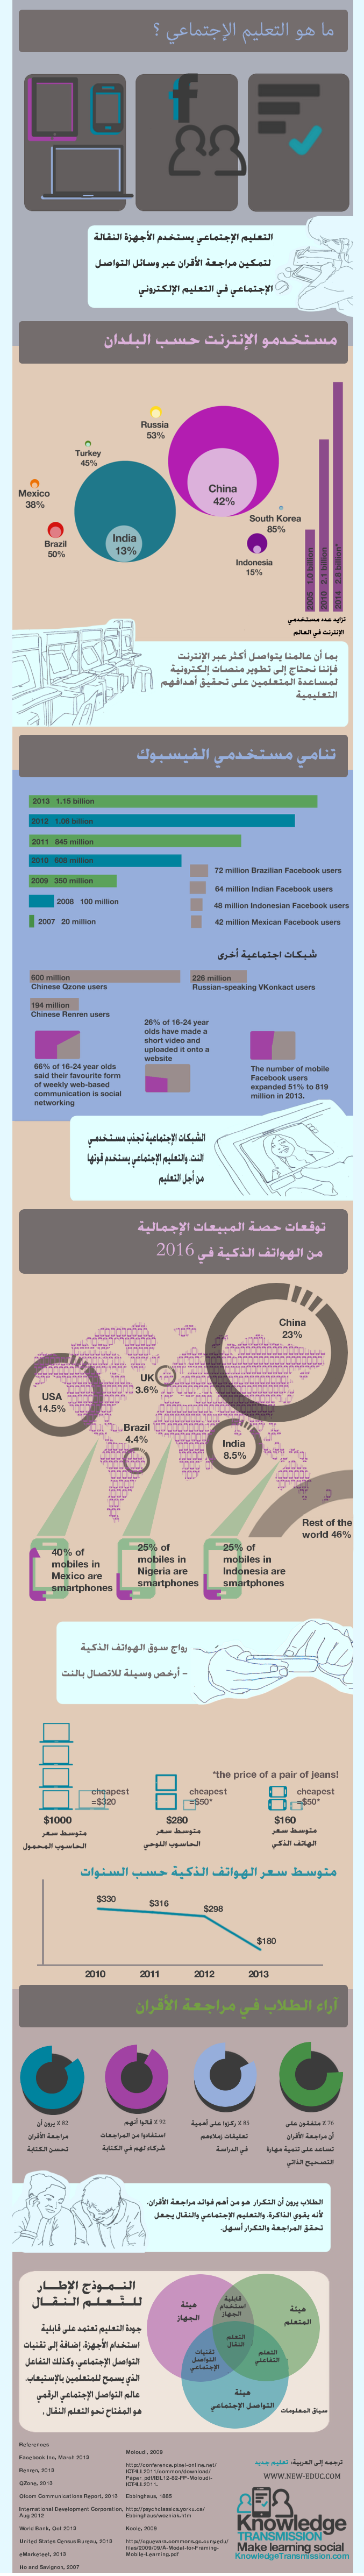 Social_Learning_Infographic-Arabic